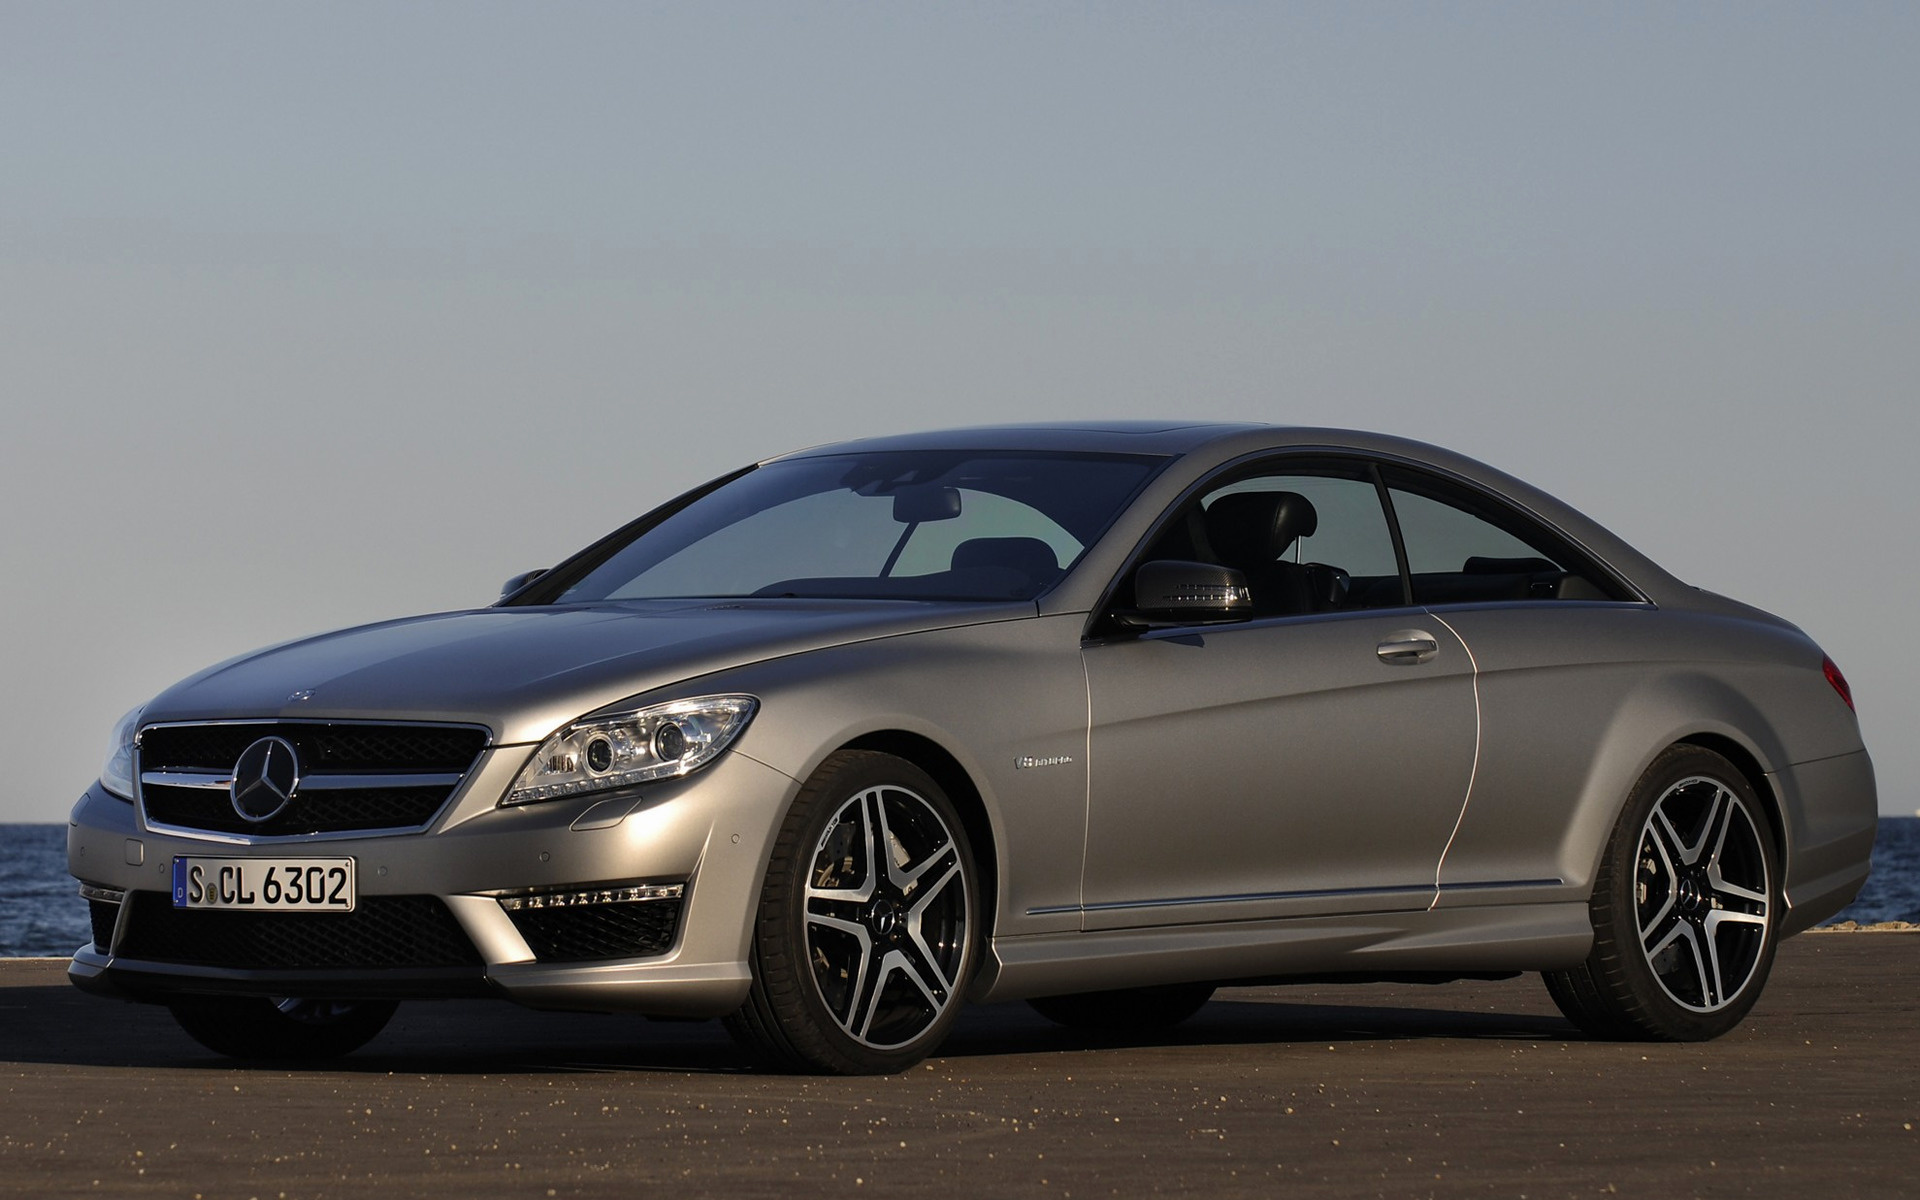 mercedes cl63 amg hd - photo #38